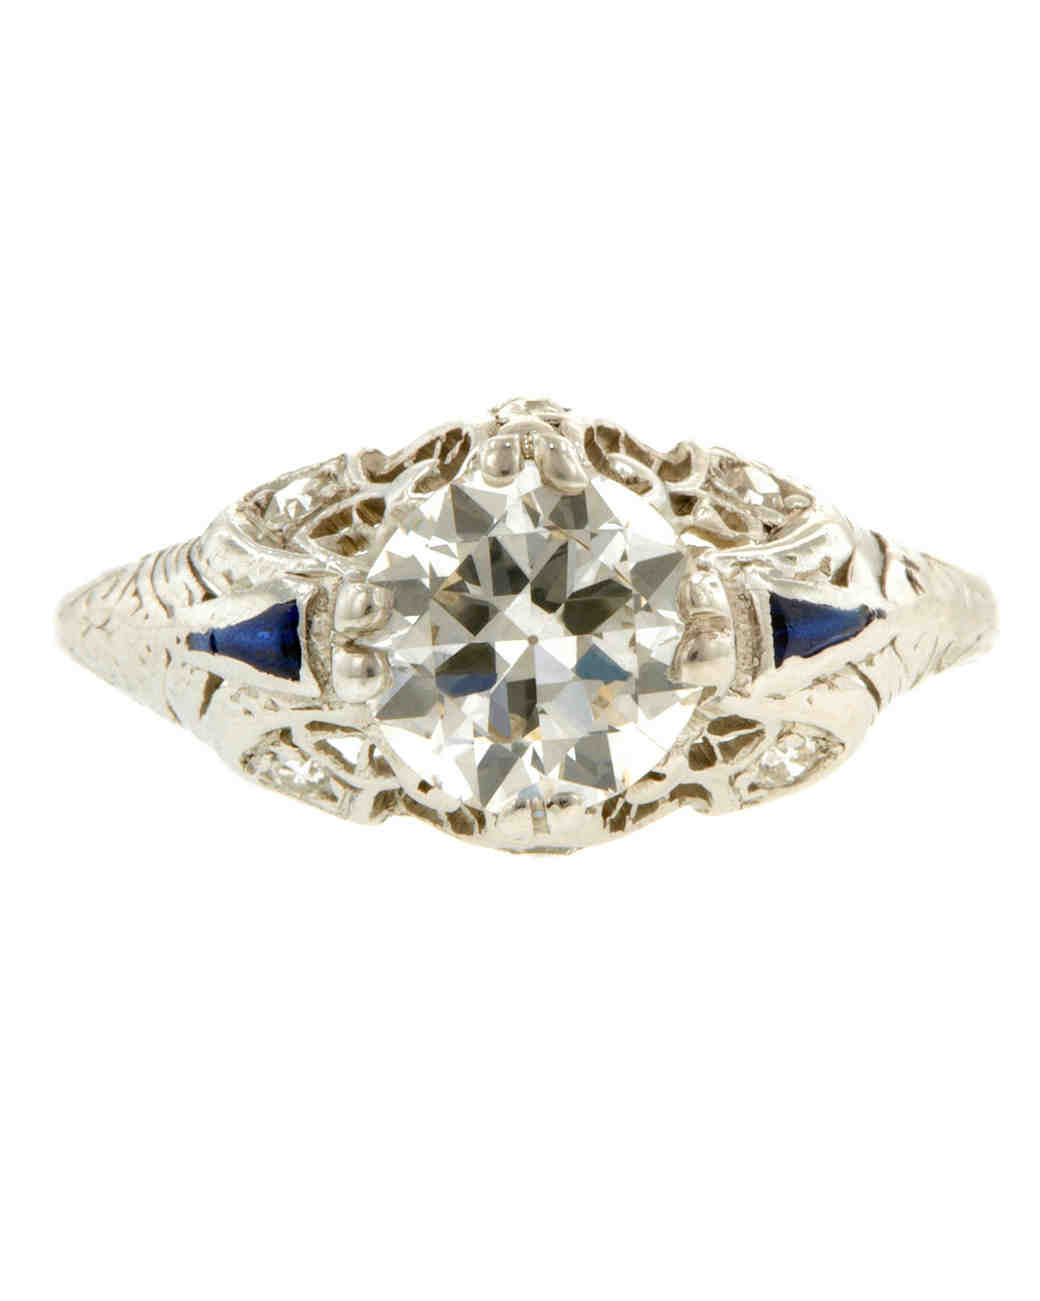 11 tips for finding a vintage engagement ring you ll